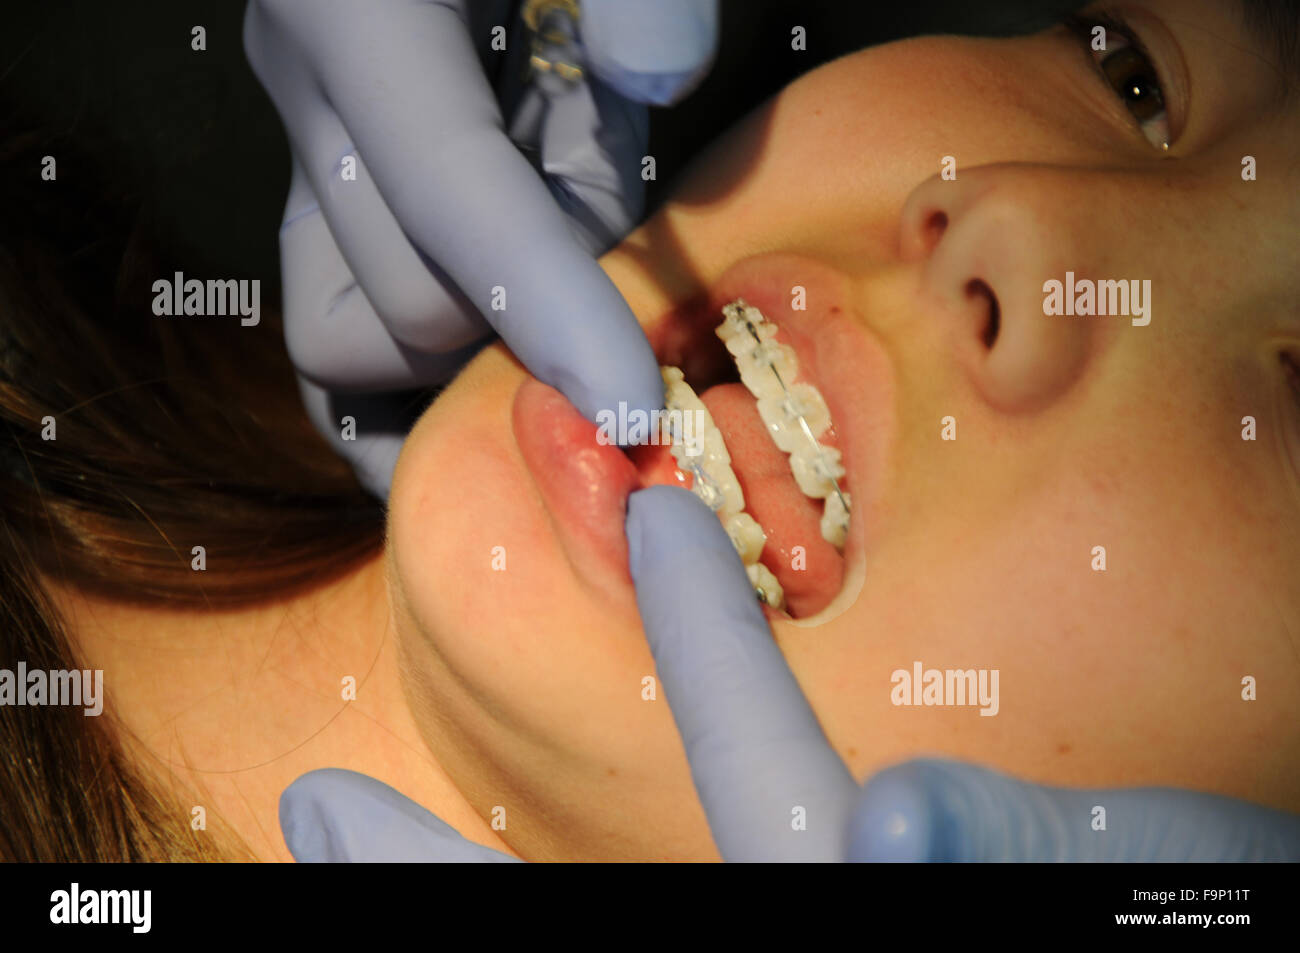 An orthodontist is a type of dentist who specializes in straightening crooked teeth. Adjusting braces and checking - Stock Image